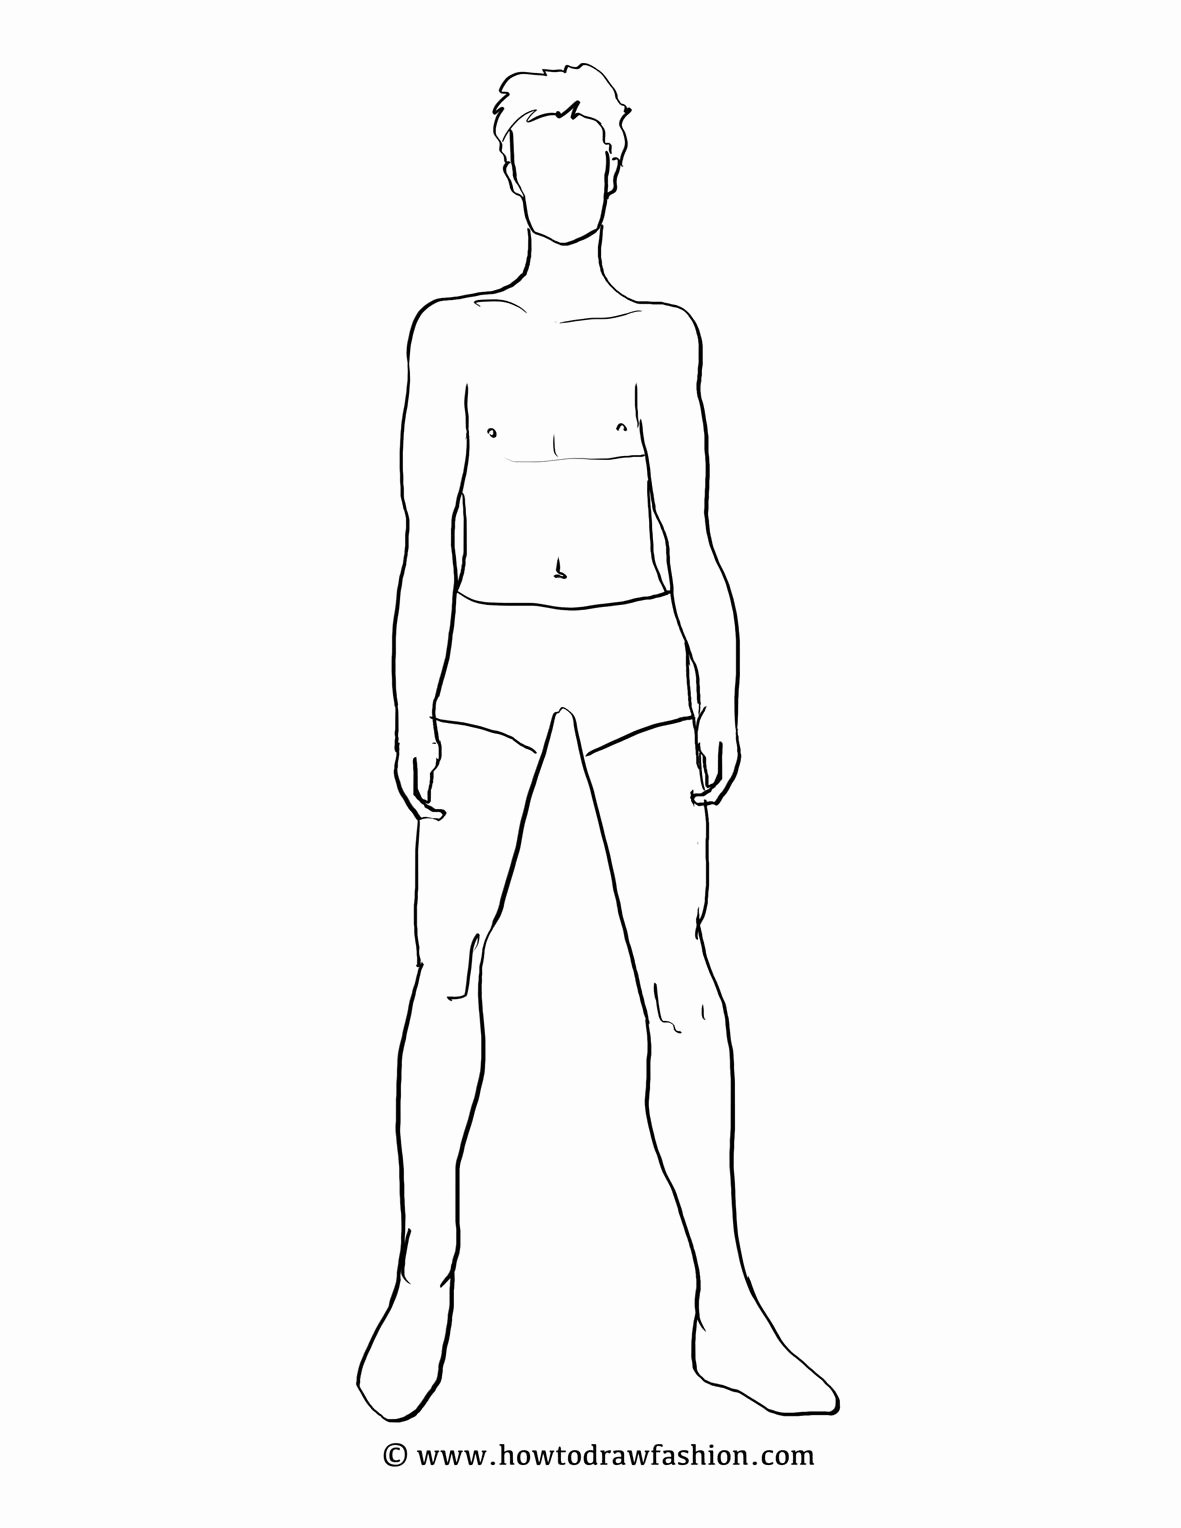 Mannequin Template for Fashion Design Lovely Male Fashion Template Croquis Guy Man